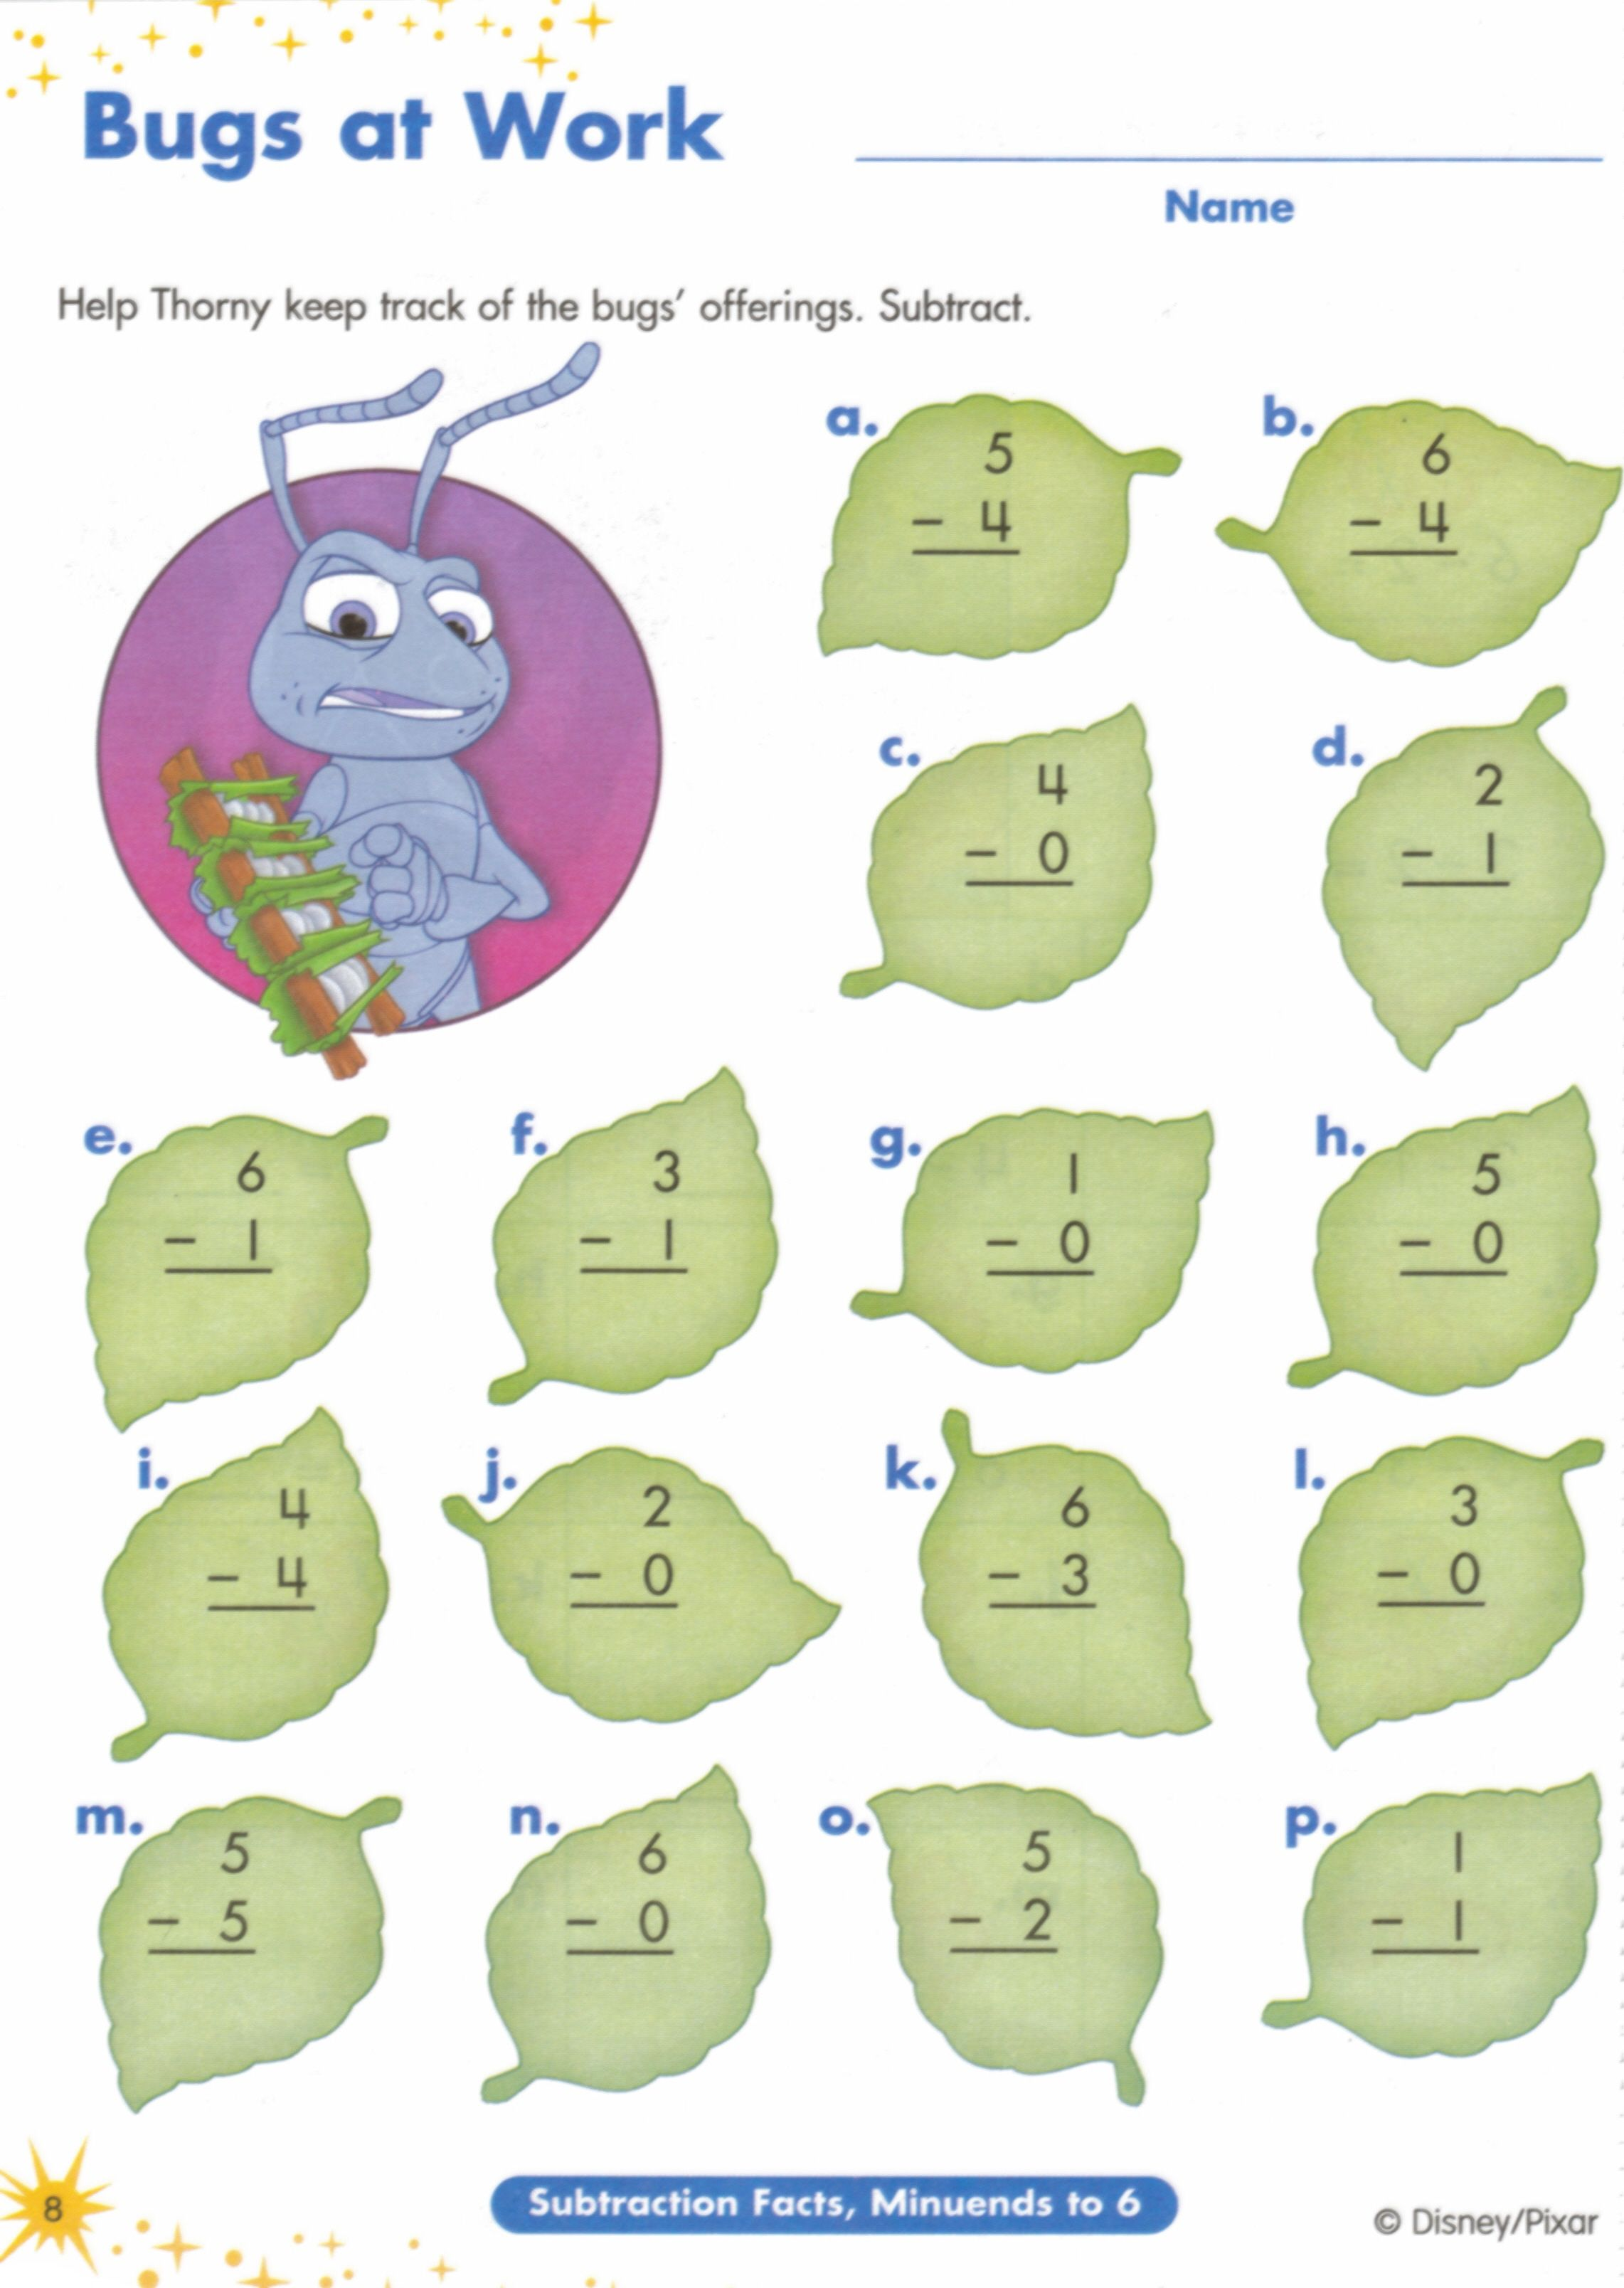 Proatmealus  Inspiring  Images About Worksheets On Pinterest  Fun Facts For Kids  With Interesting  Images About Worksheets On Pinterest  Fun Facts For Kids Earth Day Worksheets And Jungles With Amazing The Five Senses Worksheet Also Esl Vocabulary Worksheet In Addition Worksheet On Adjectives For Grade  And Make A Skeleton Worksheet As Well As Quick Math Worksheets Additionally Grade  Division Worksheets From Pinterestcom With Proatmealus  Interesting  Images About Worksheets On Pinterest  Fun Facts For Kids  With Amazing  Images About Worksheets On Pinterest  Fun Facts For Kids Earth Day Worksheets And Jungles And Inspiring The Five Senses Worksheet Also Esl Vocabulary Worksheet In Addition Worksheet On Adjectives For Grade  From Pinterestcom